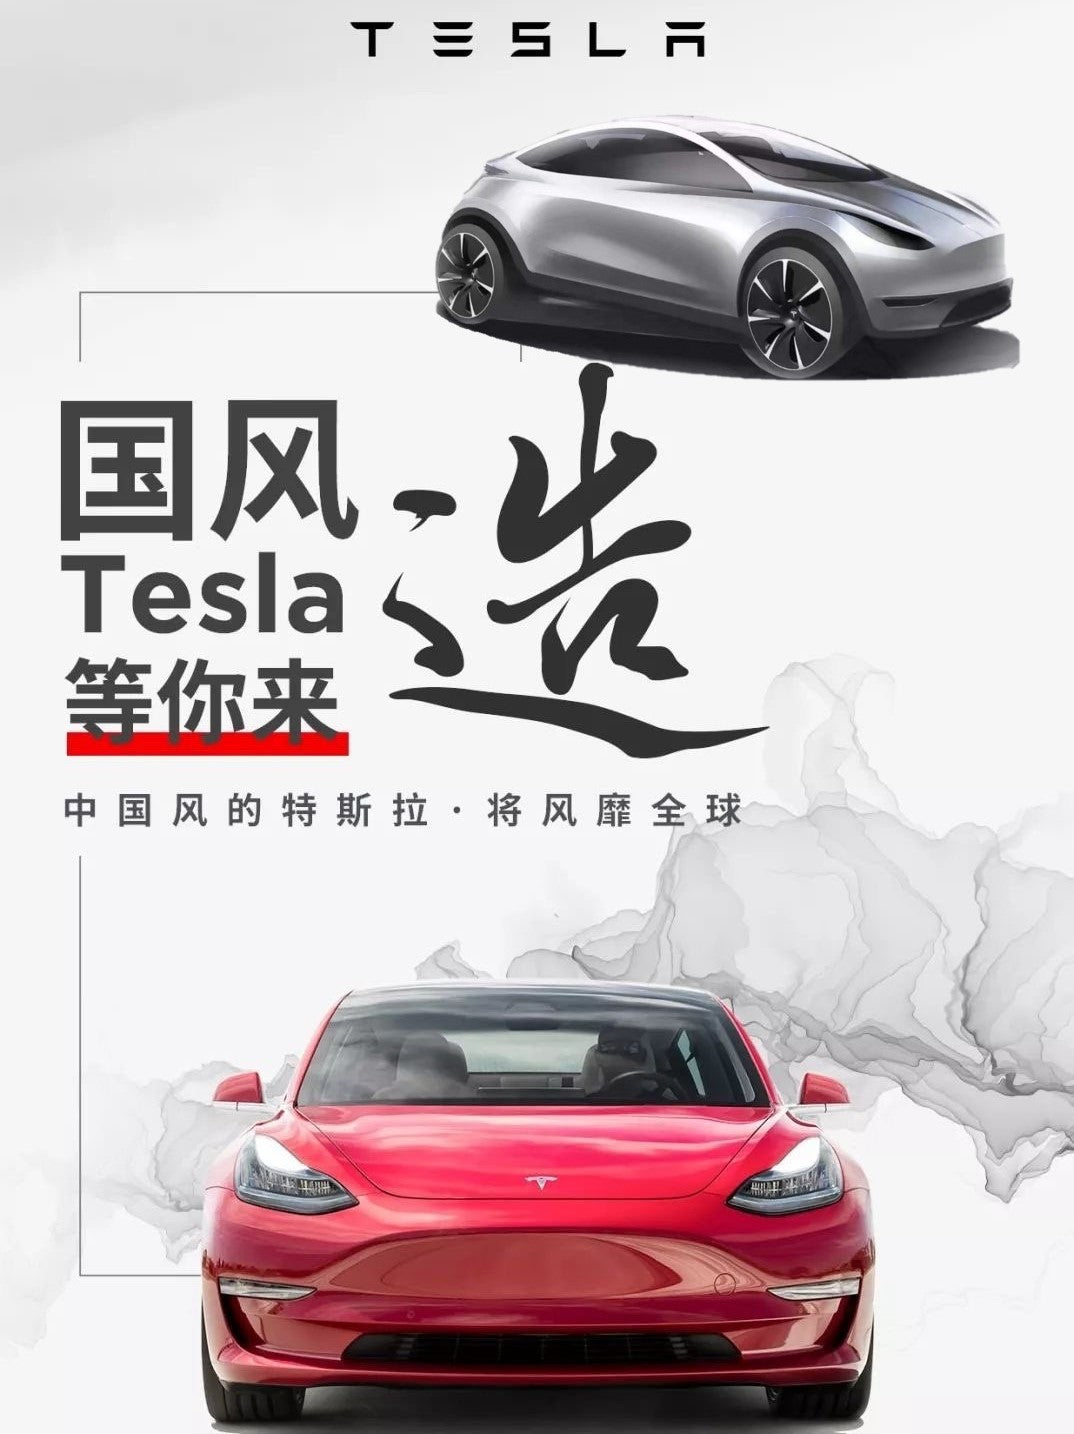 Tesla China Recruits Talents For Future Localize Models